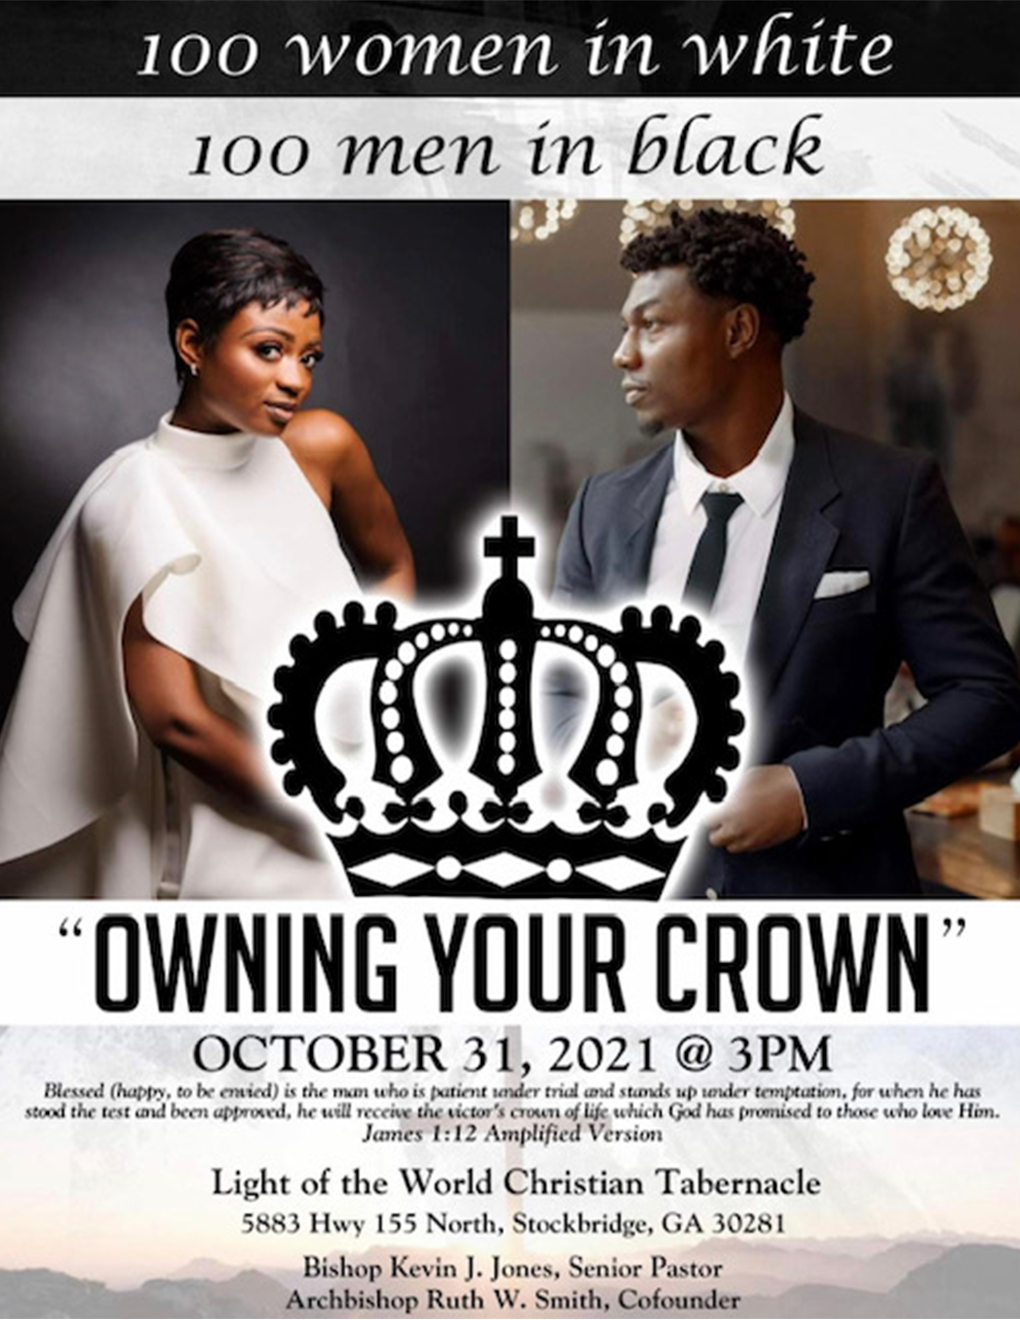 100 Women in White 100 Men in Black event called owning your crown